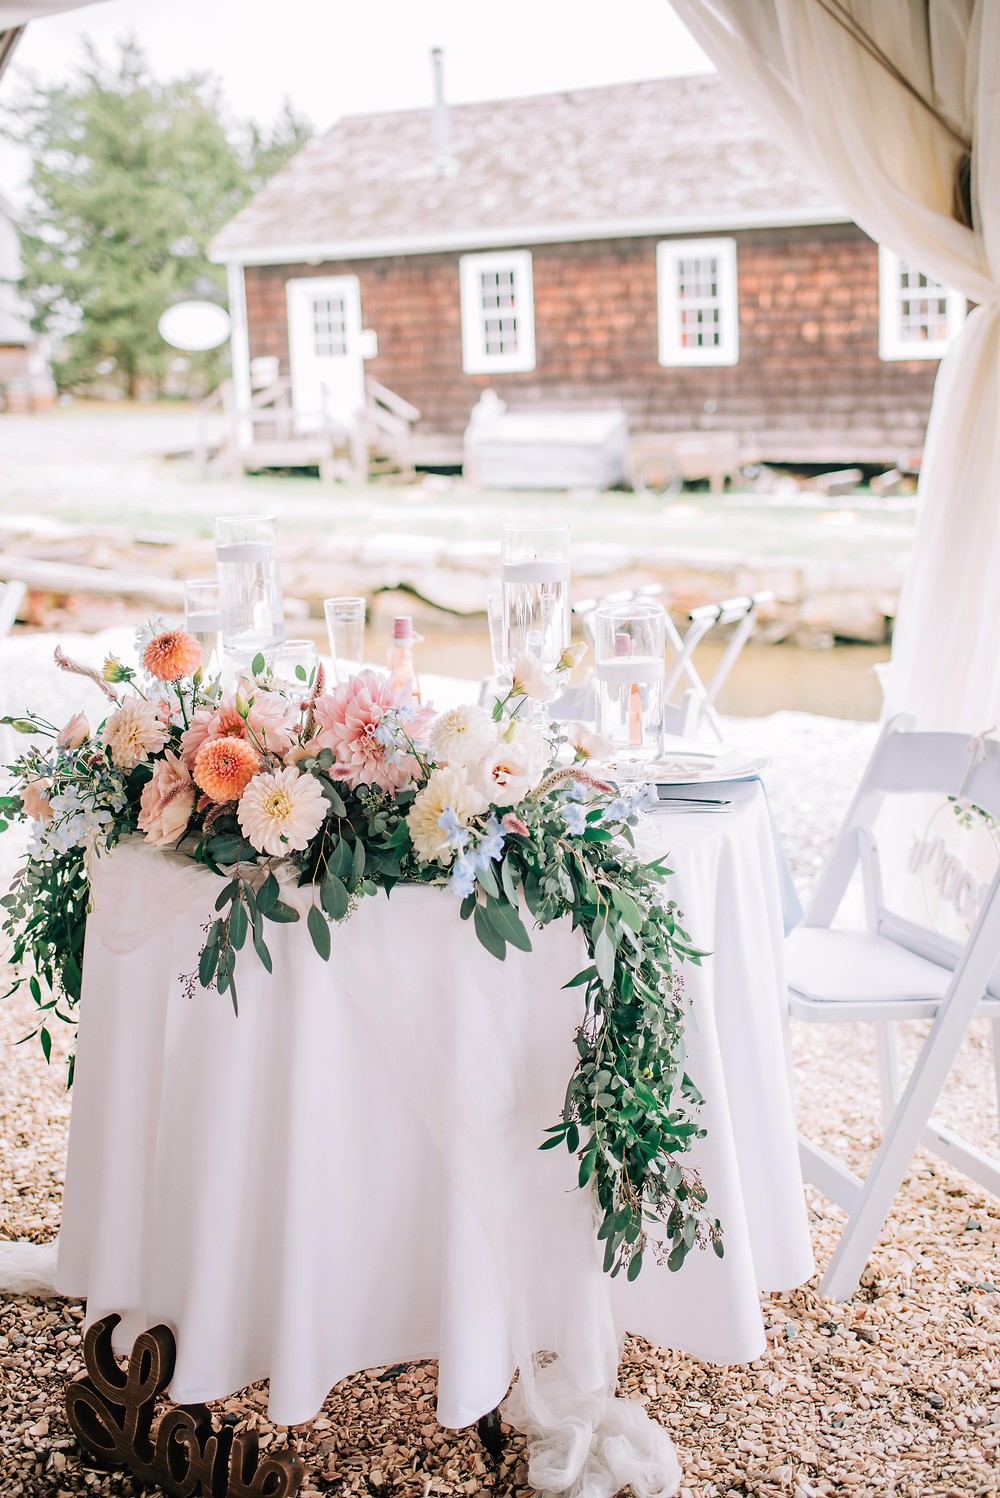 Blush & light blue Dahlia floral garland for sweetheart table